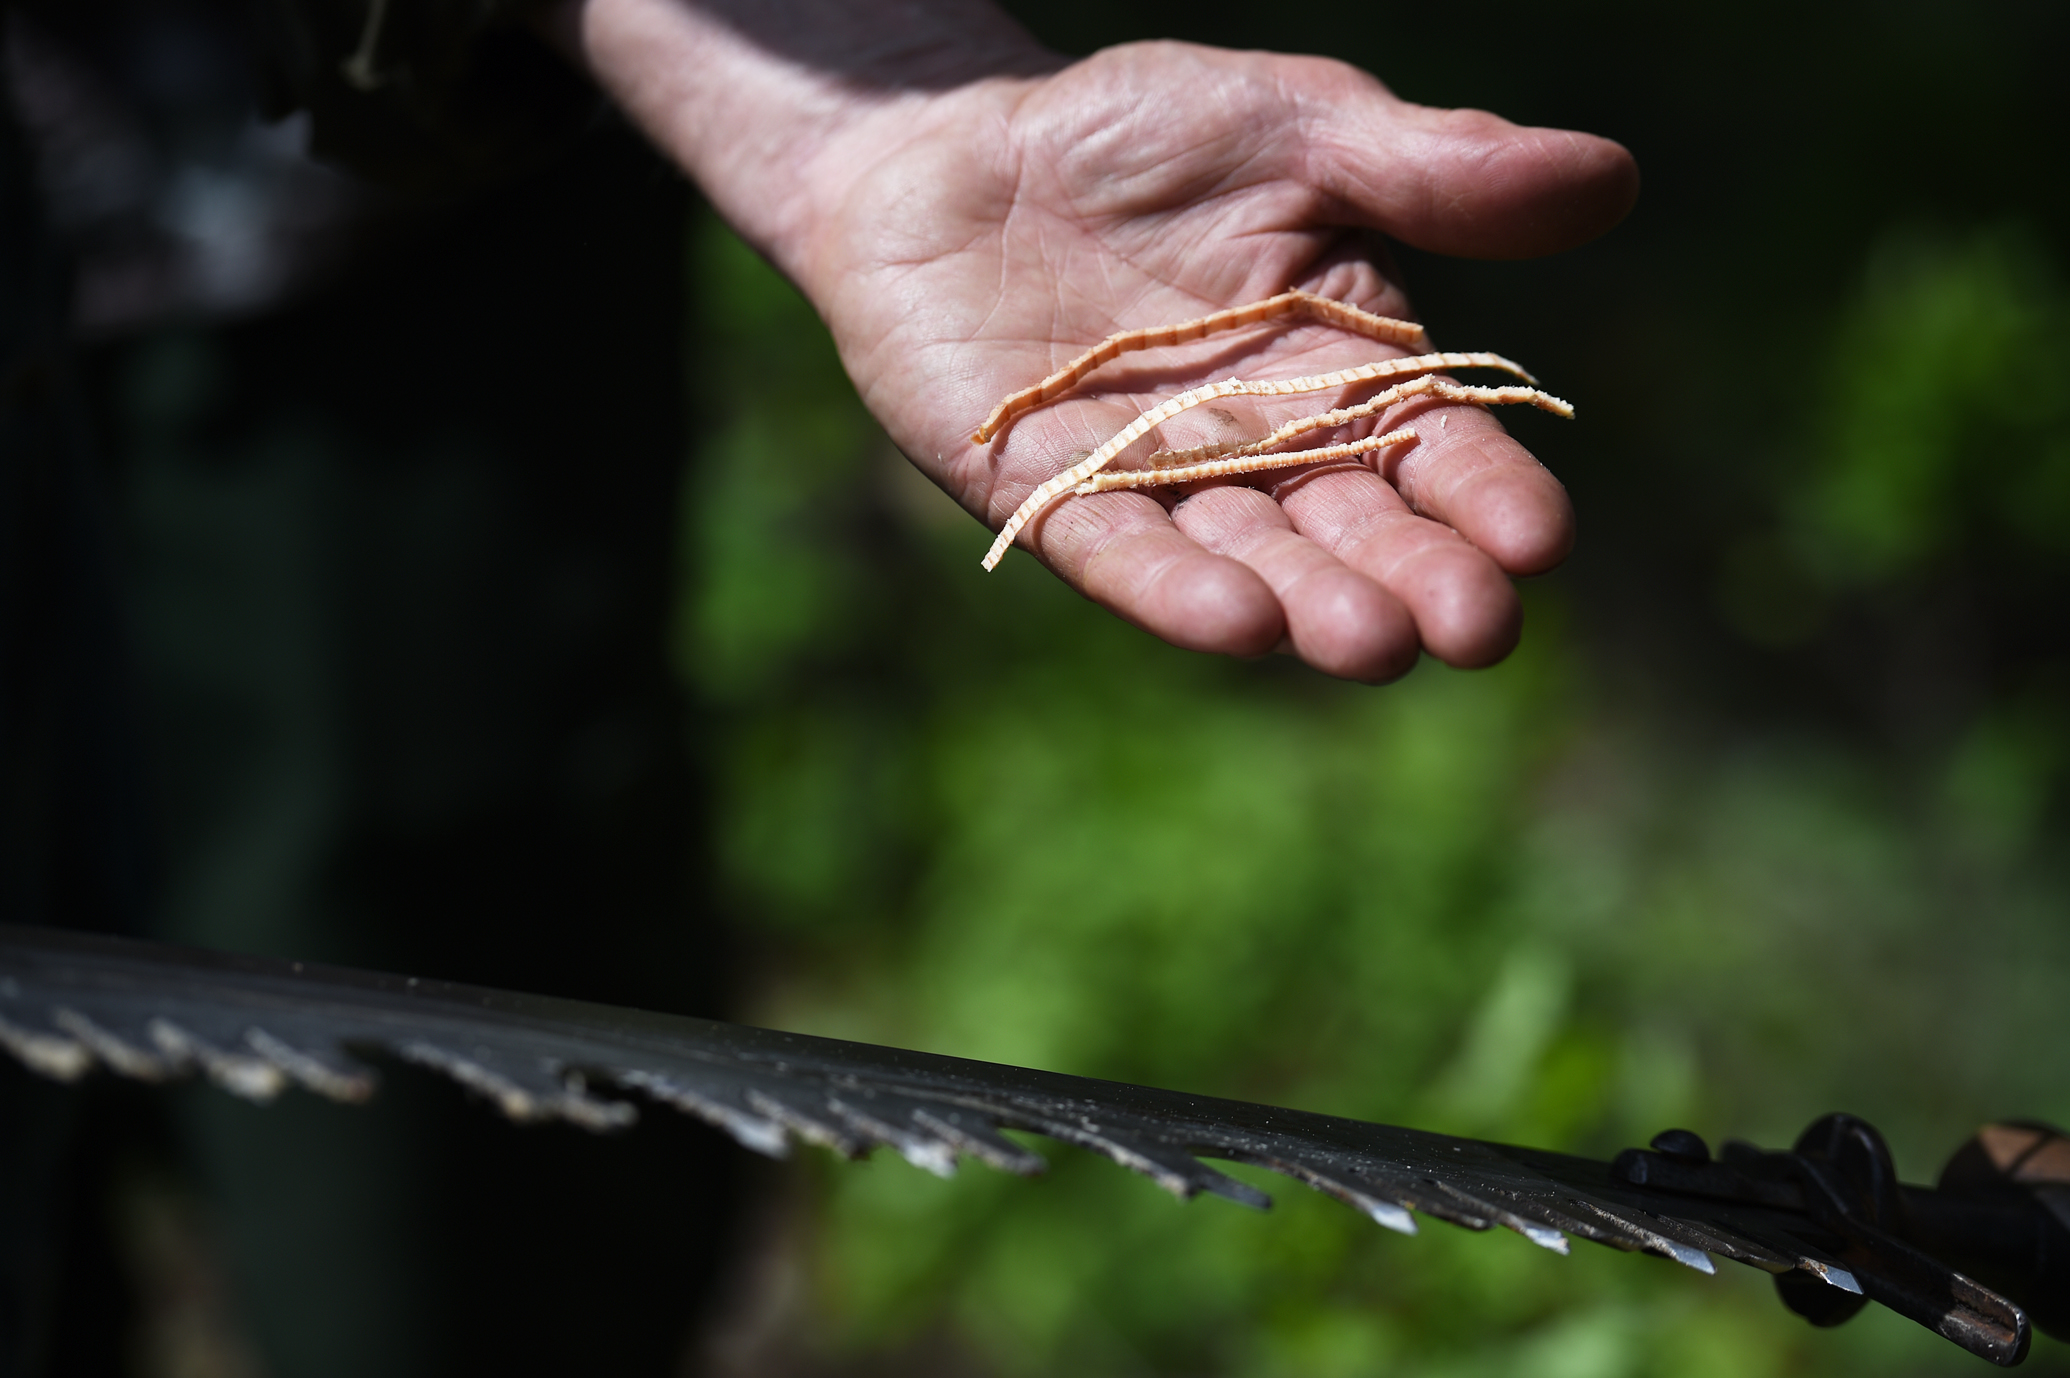 Instructor Bob Beckley displays the wood shavings that proper crosscut practice leaves.